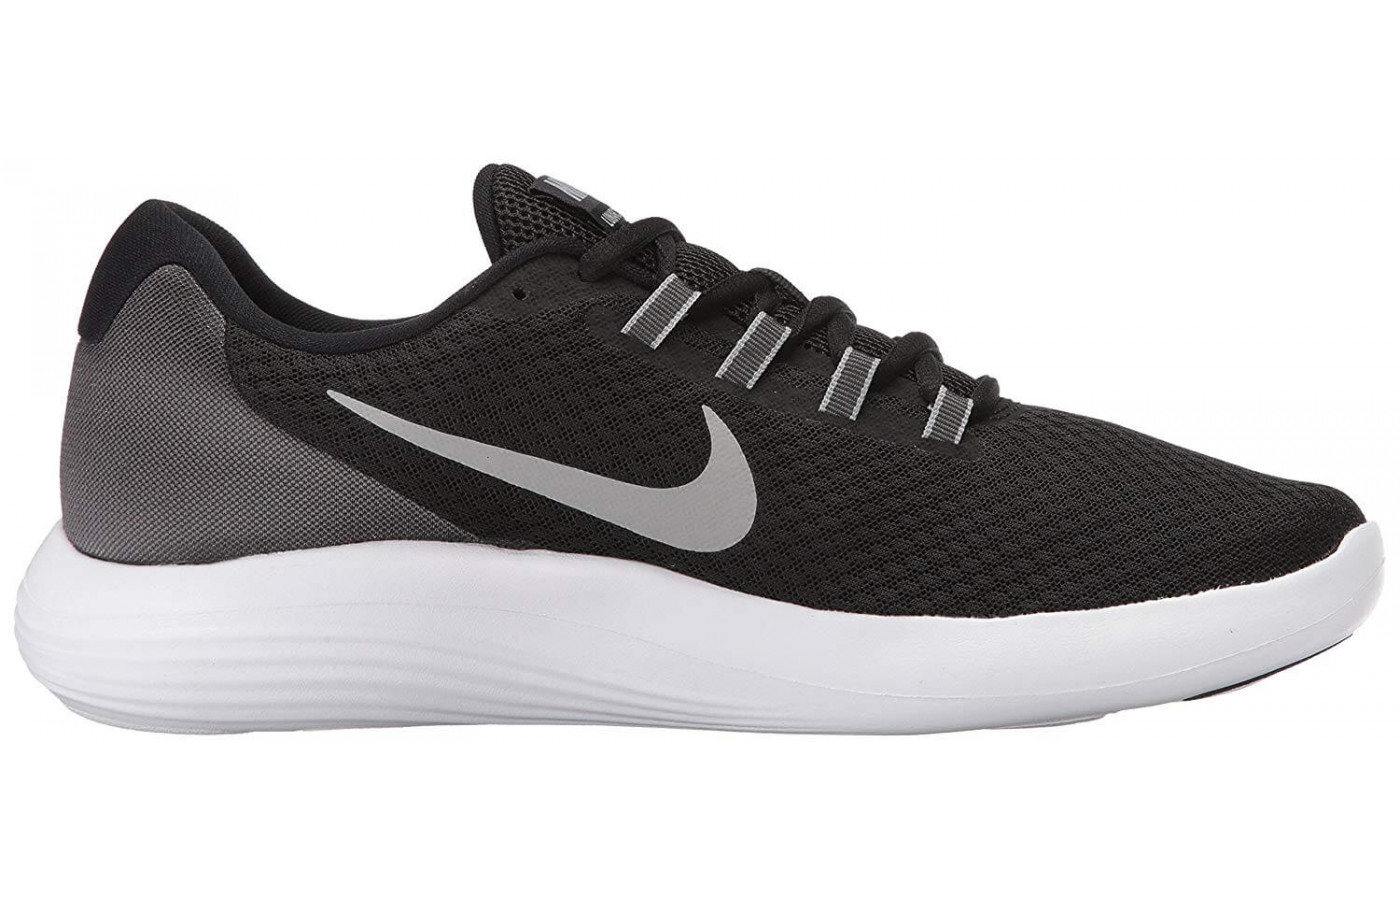 e34bc76f640b Nike LunarConverge Reviewed - To Buy or Not in Apr 2019